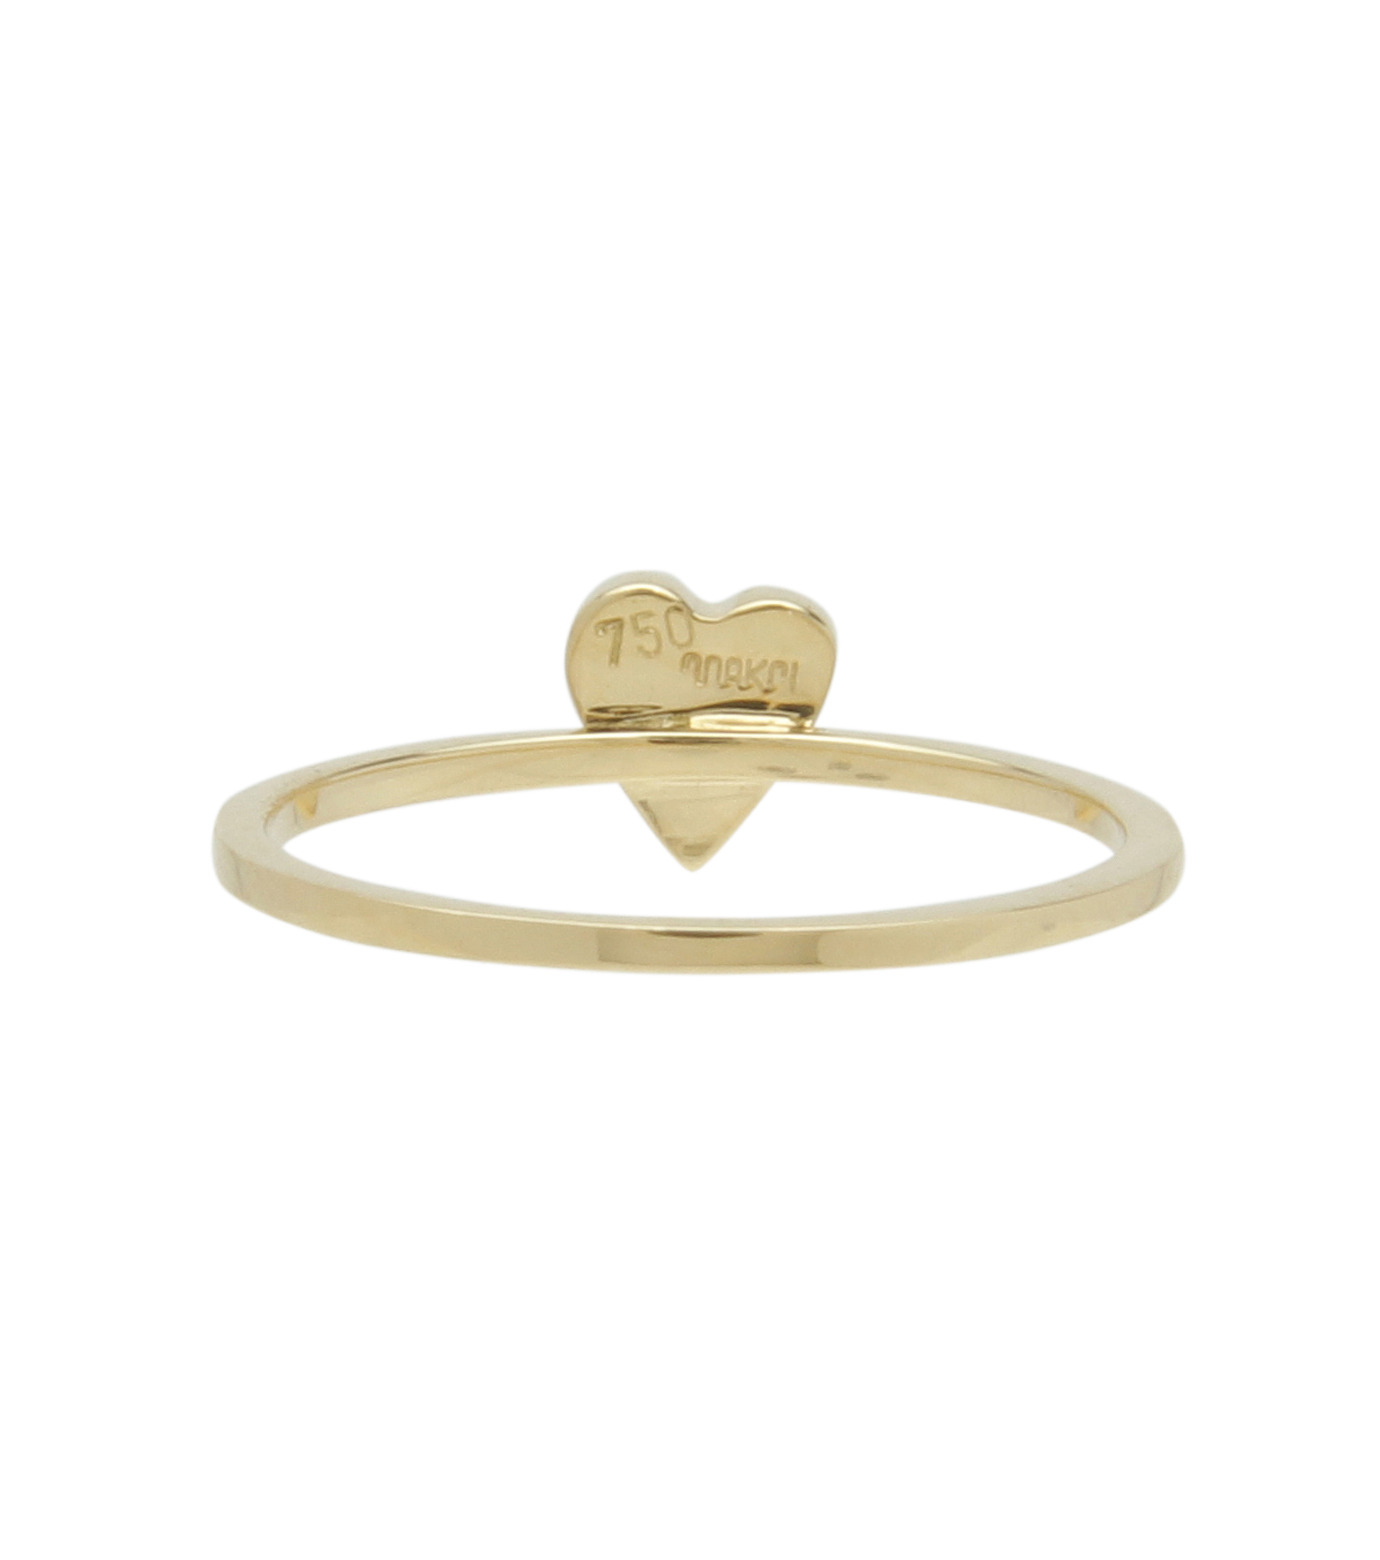 Ileana Makri(イリーナ マクリ)のLove Ring Yellow Gold-Diamond-GOLD(リング/ring)-O272-02-001-2 拡大詳細画像3